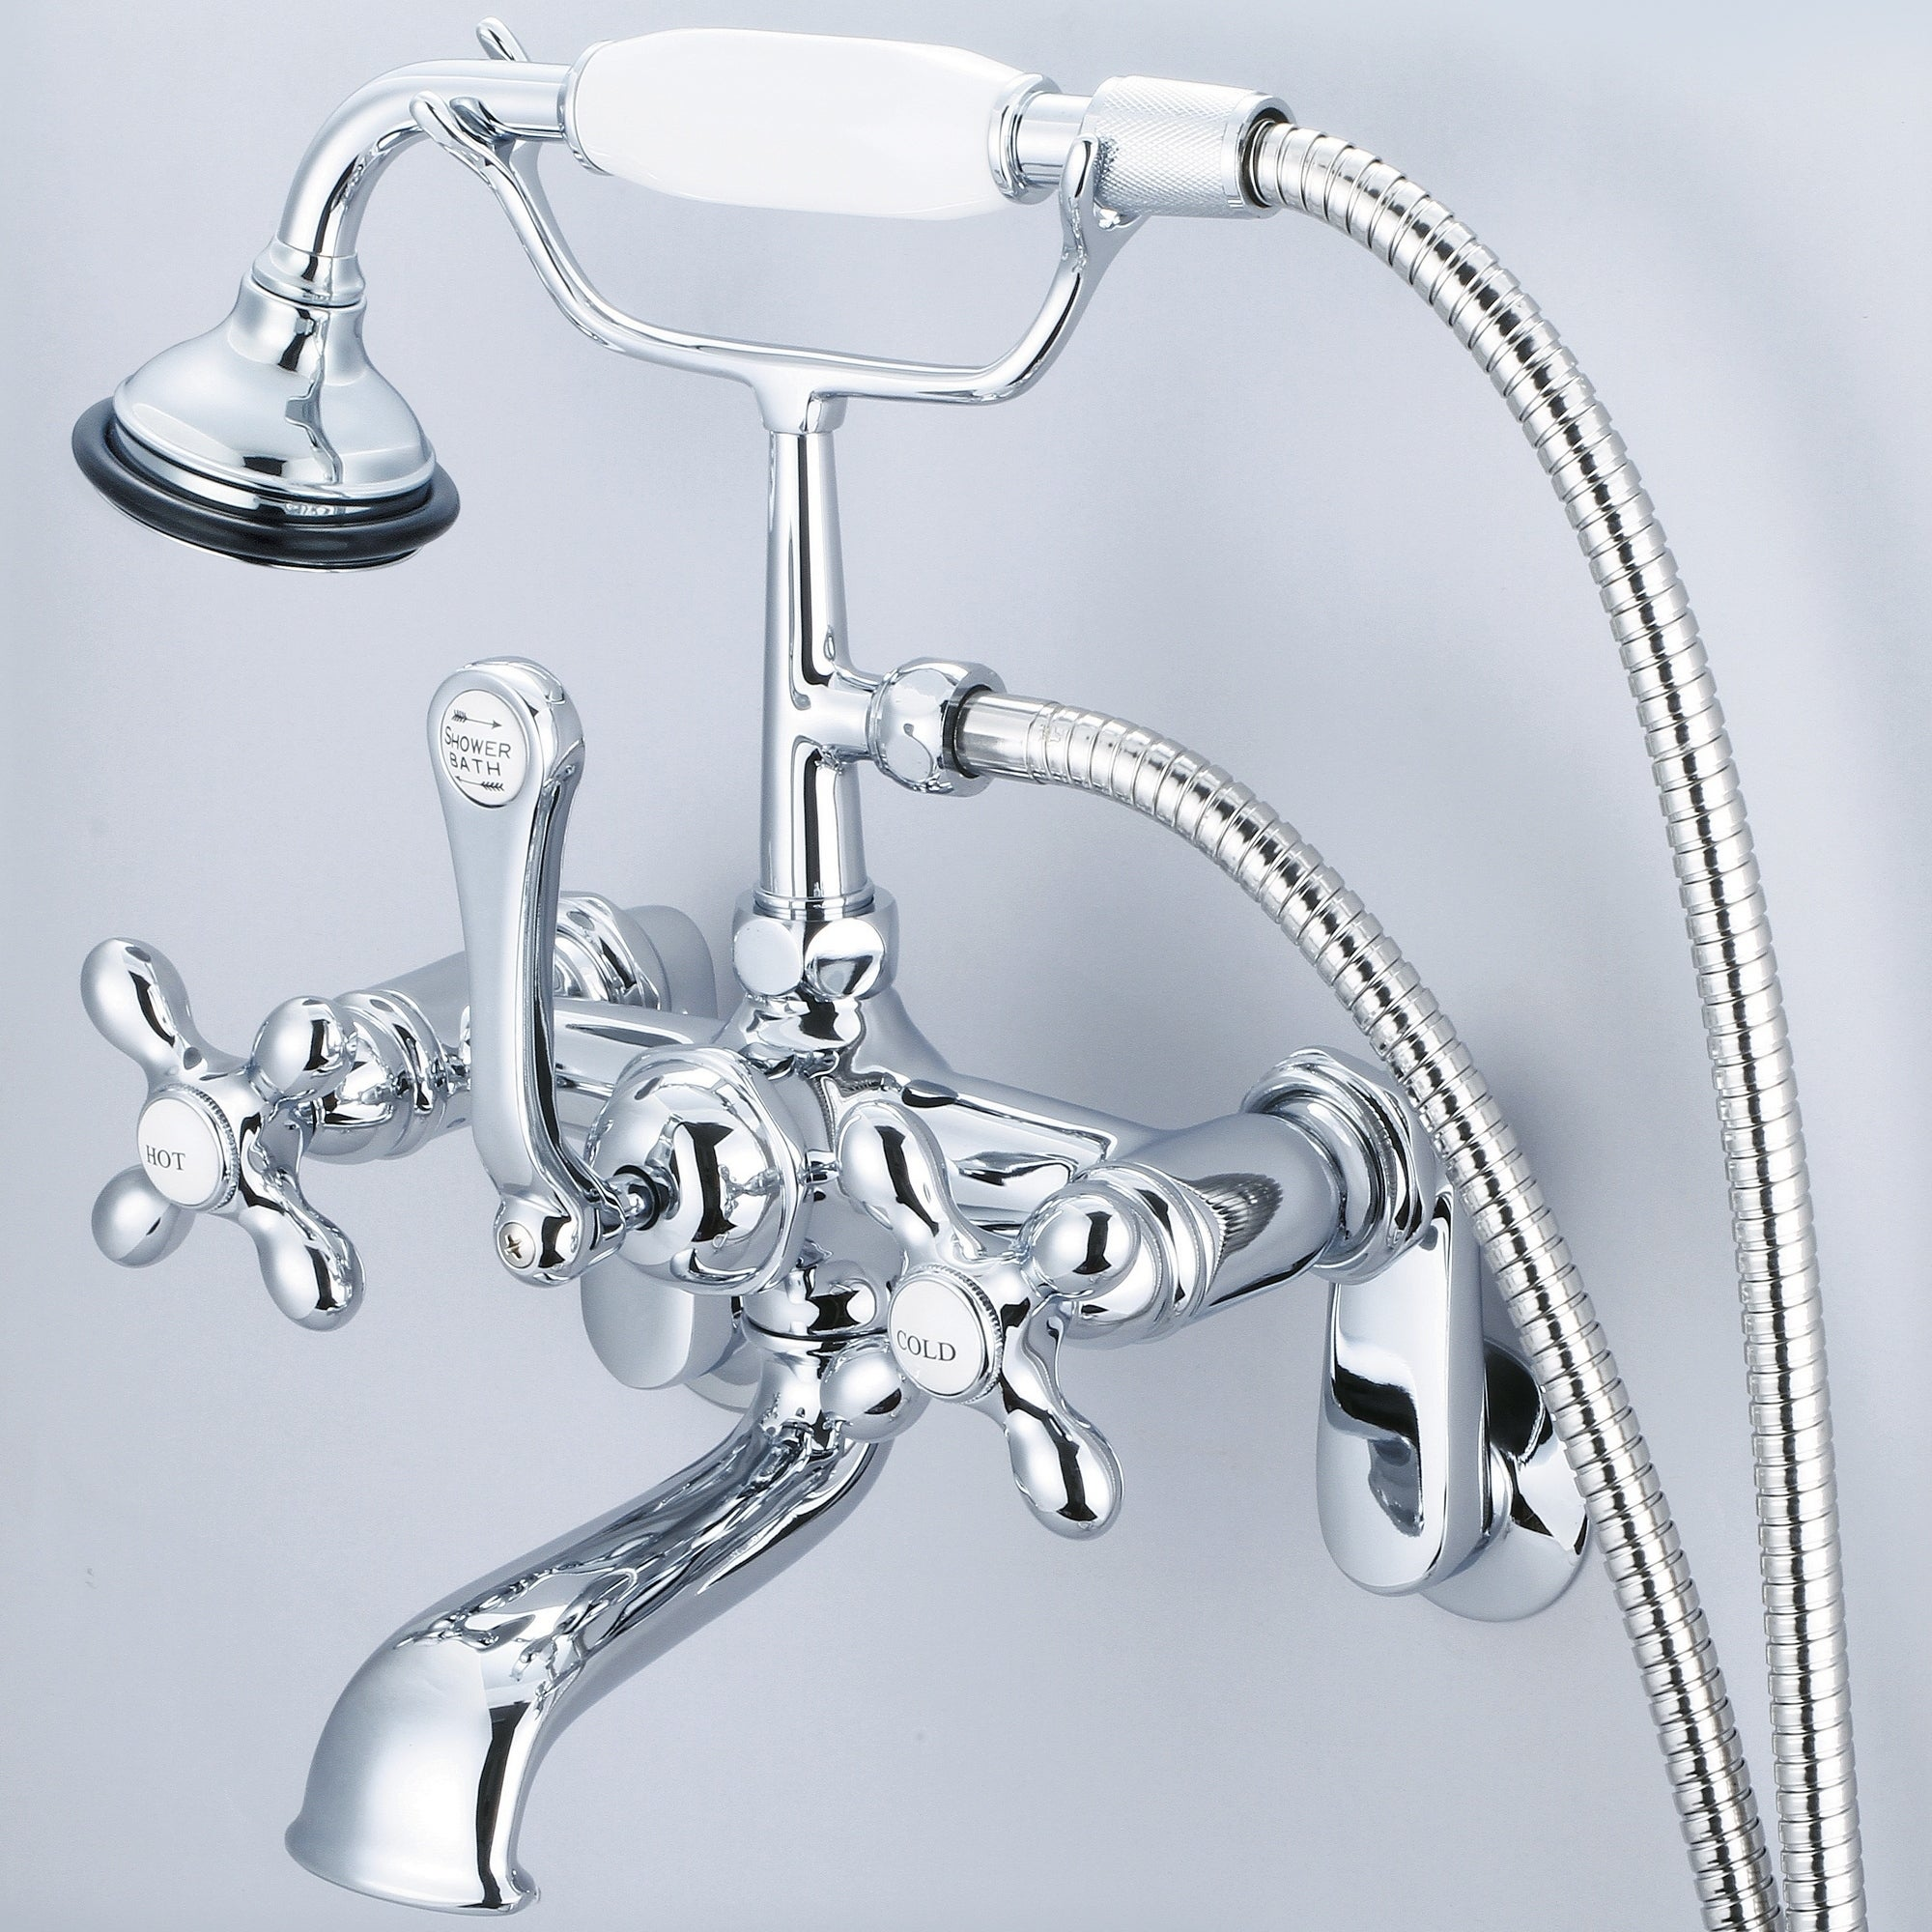 Vintage Classic Adjustable Center Wall Mount Tub Faucet With Swivel Wall Connector Handheld Shower In Chrome Finish